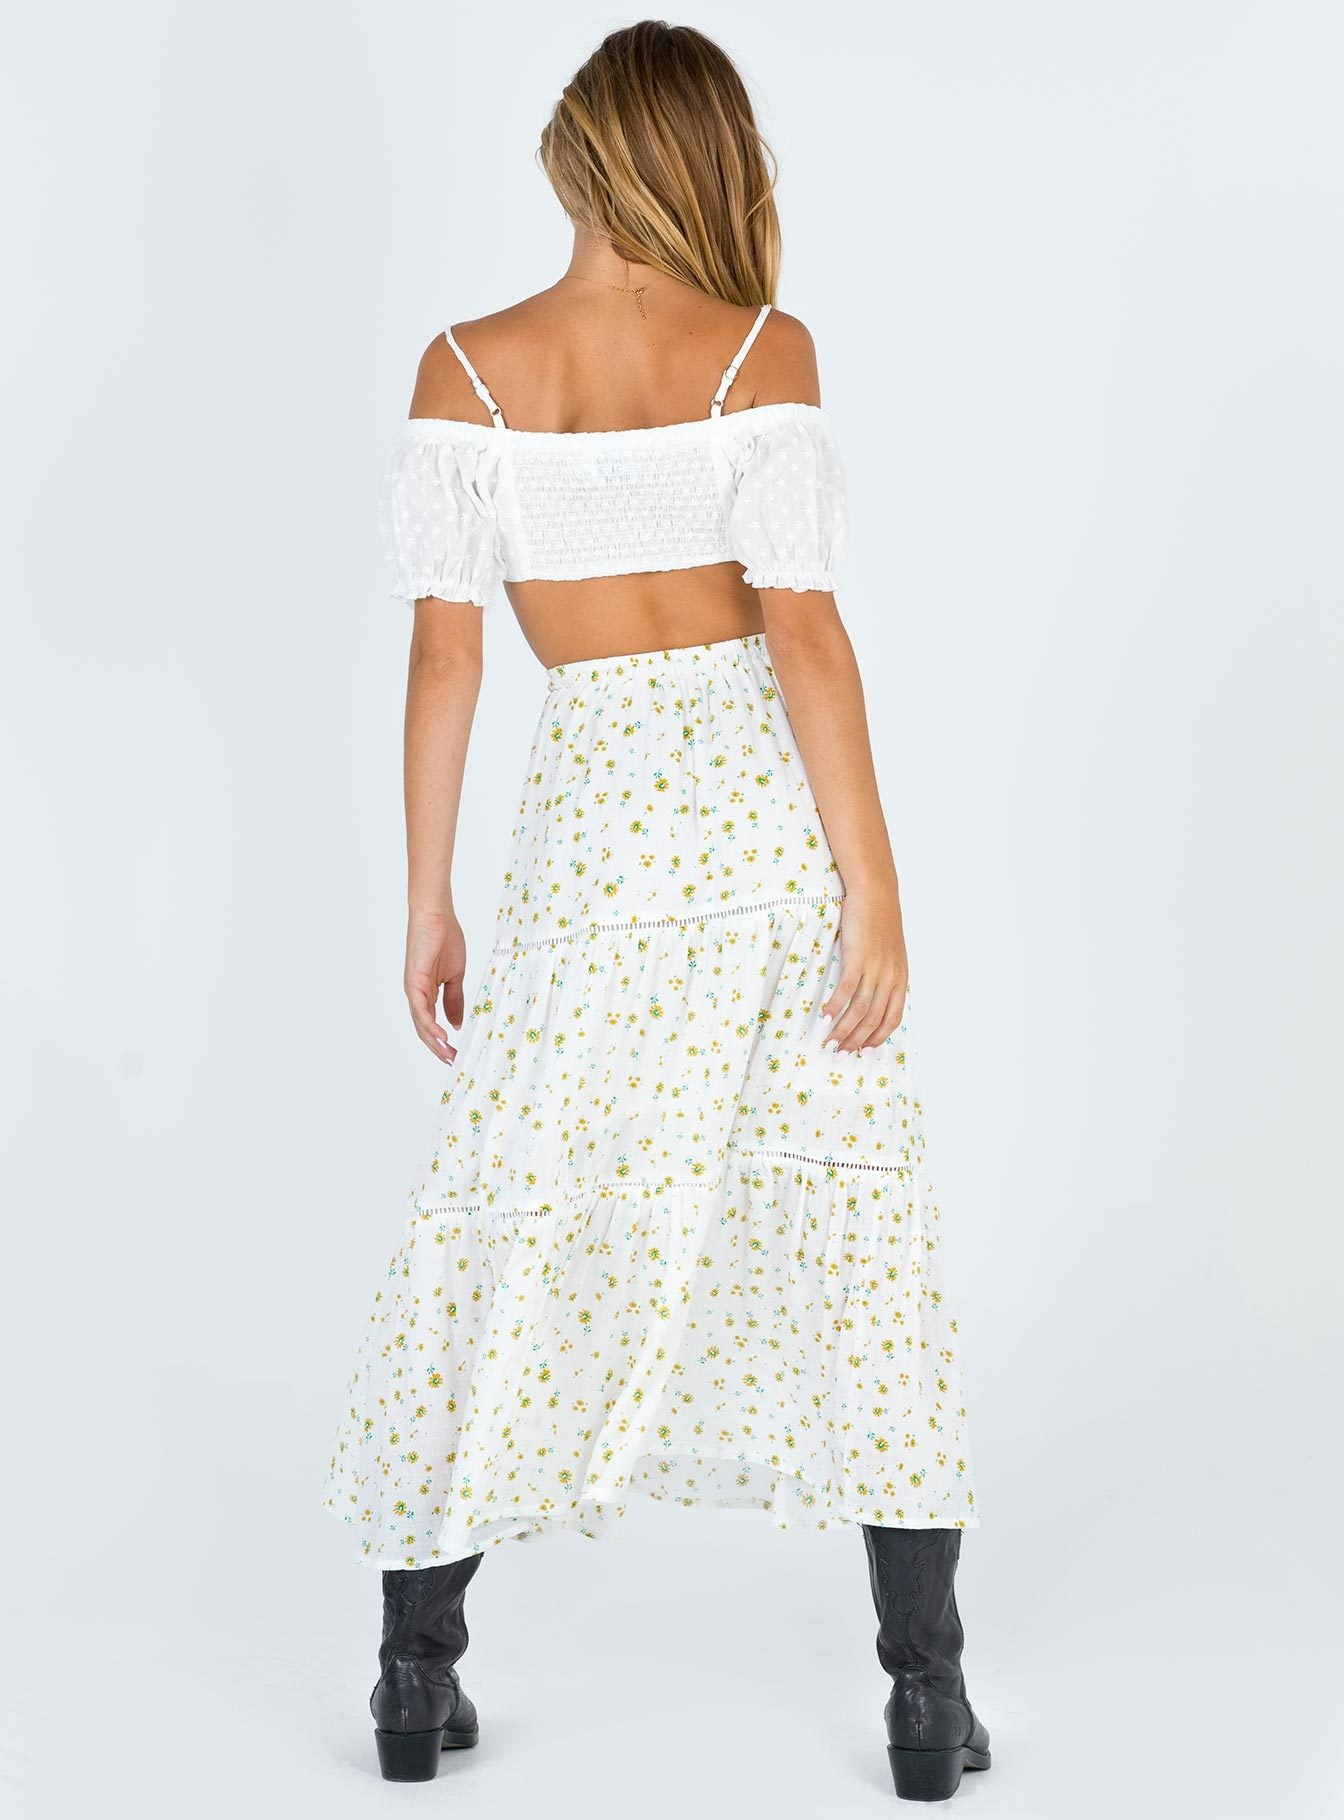 Lily Marie Maxi Skirt